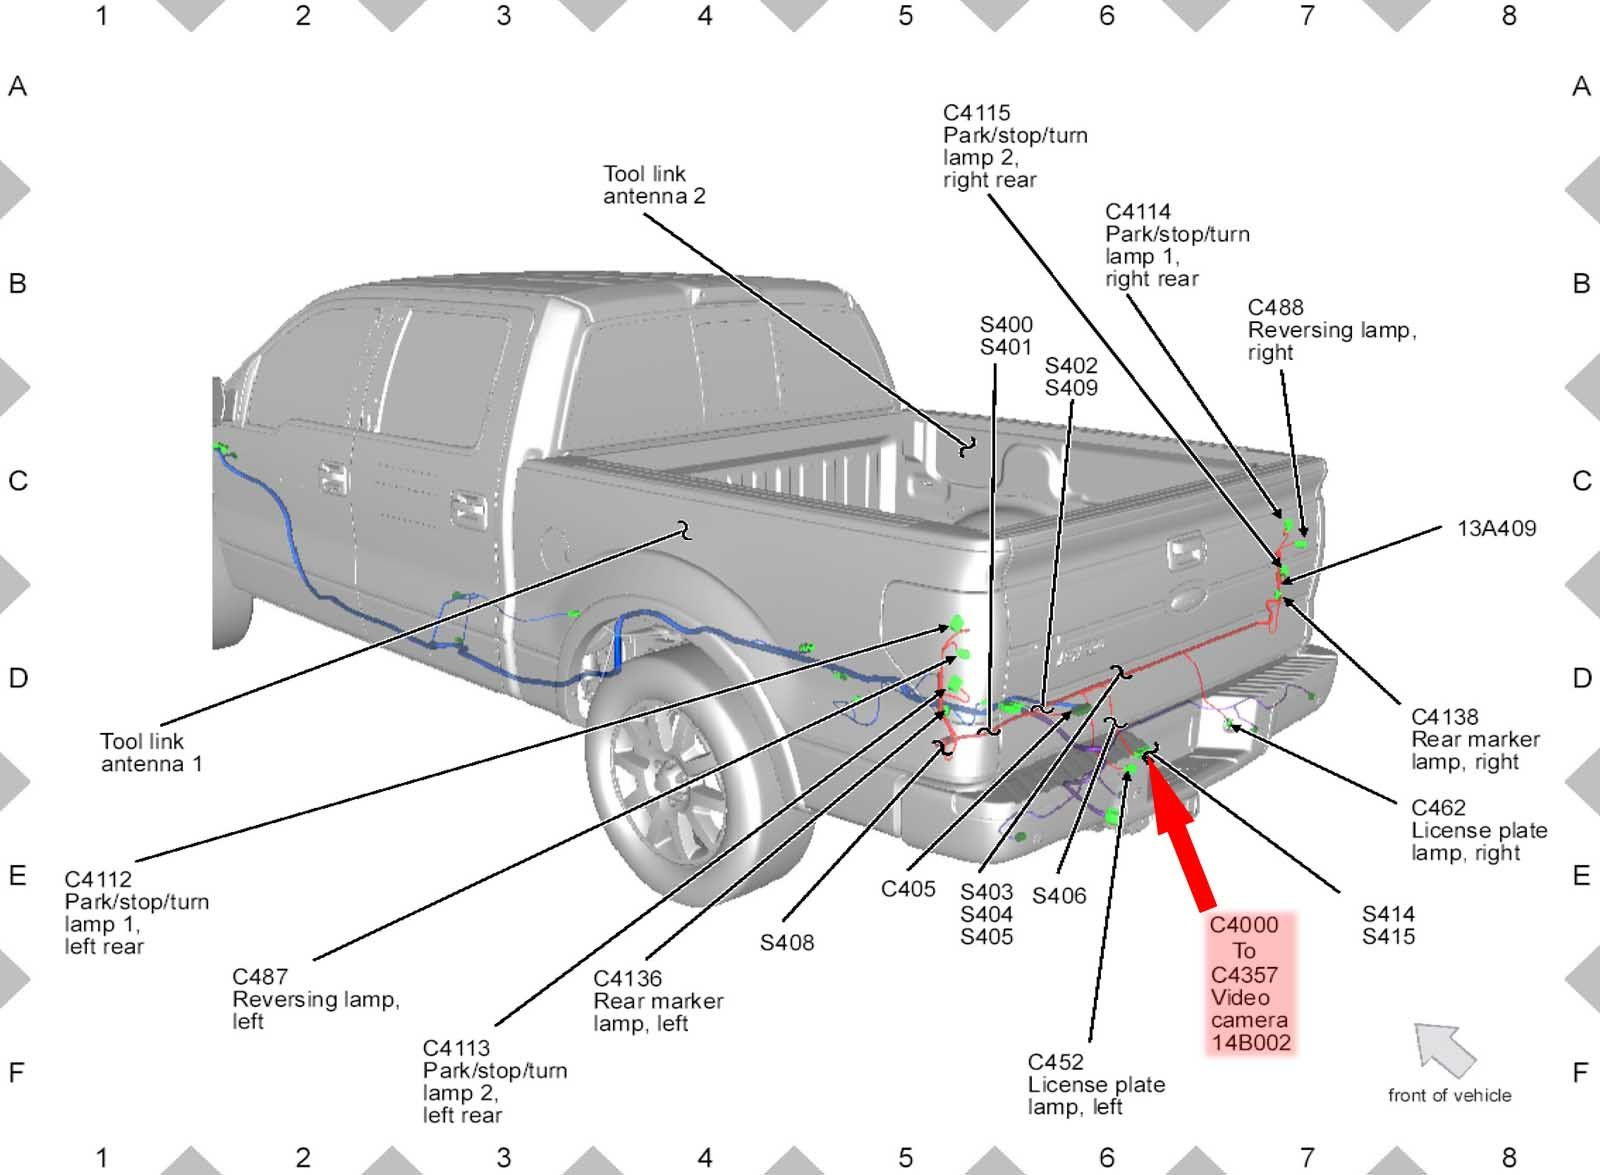 2017 ford ranger spotlight wiring diagram 3 phase dol can bliss be added page 2 f150 forum community